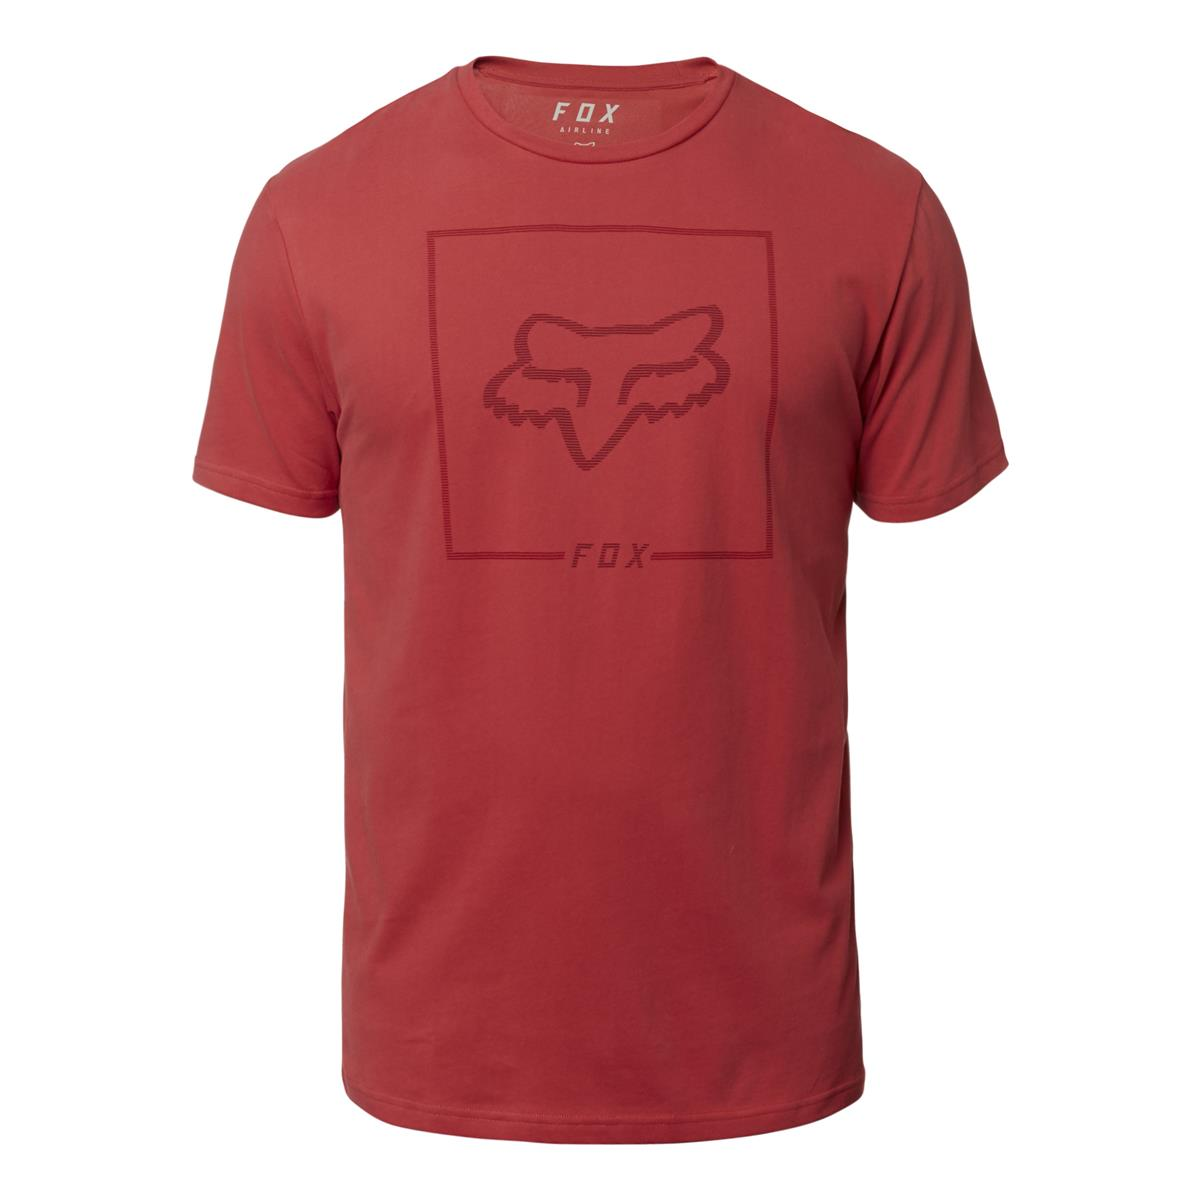 Fox T-Shirt Chapped Airline Rio Red